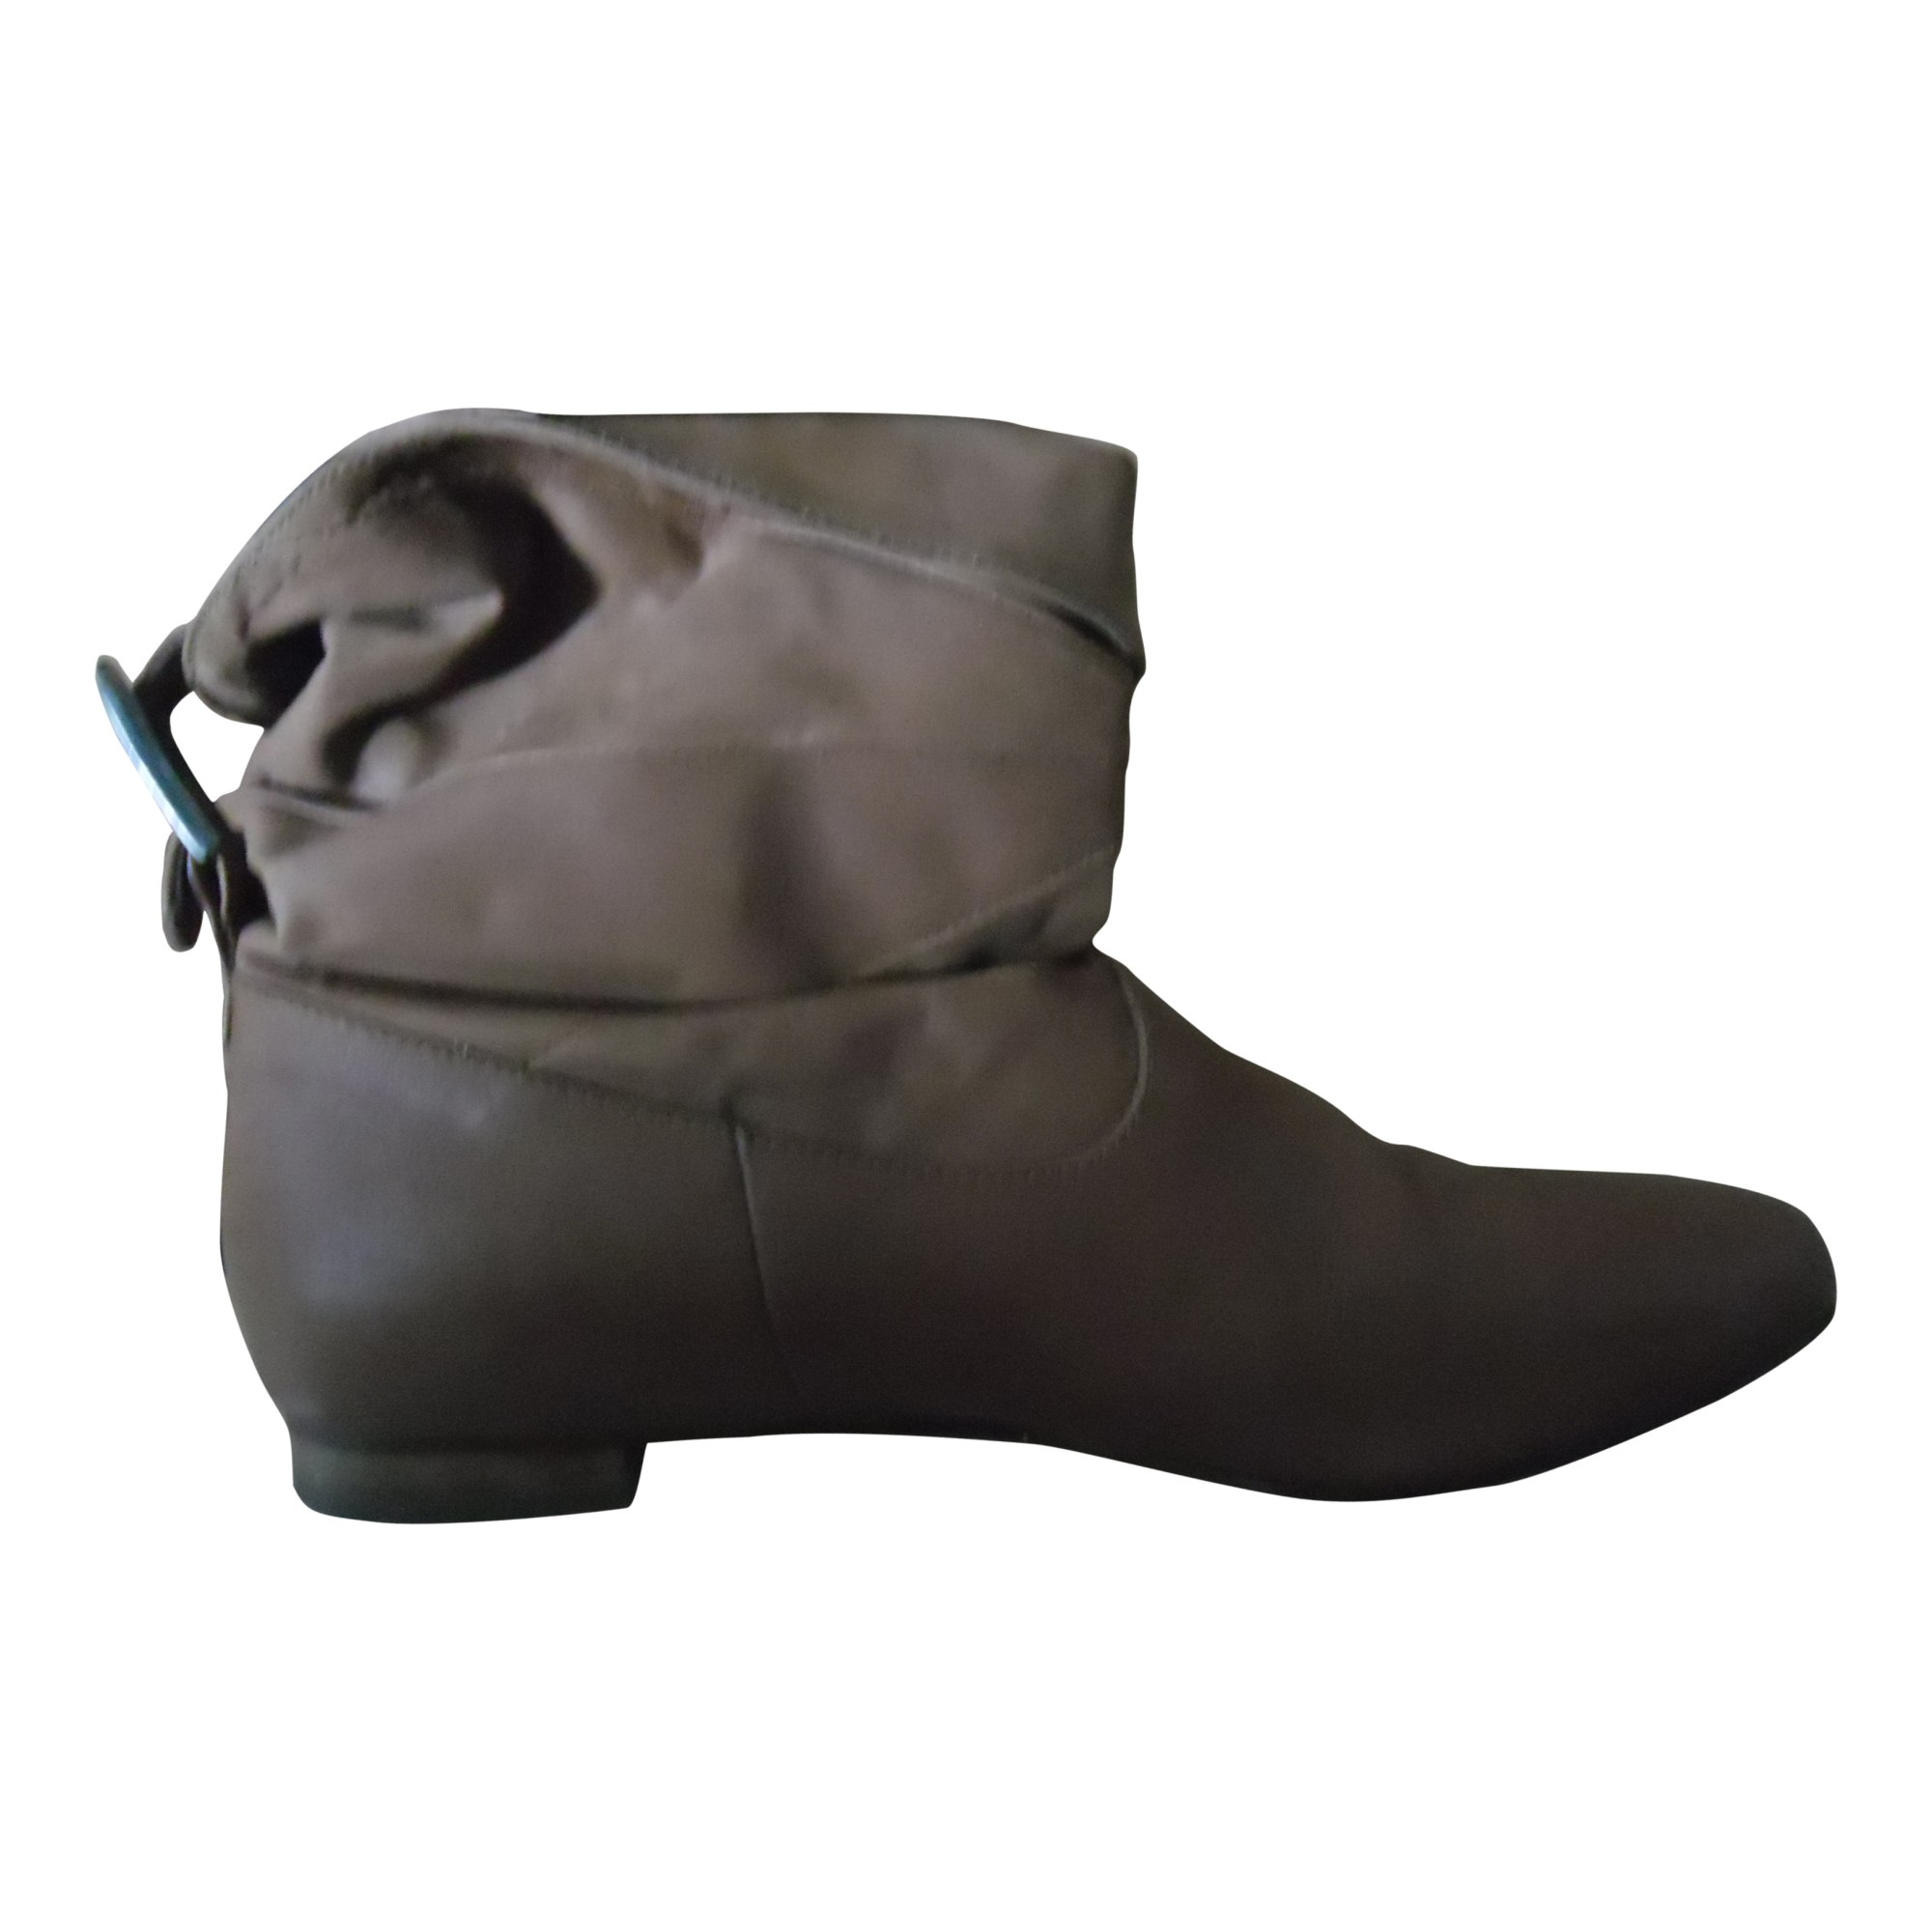 Bottines & low boots plates MELLOW YELLOW Beige, camel